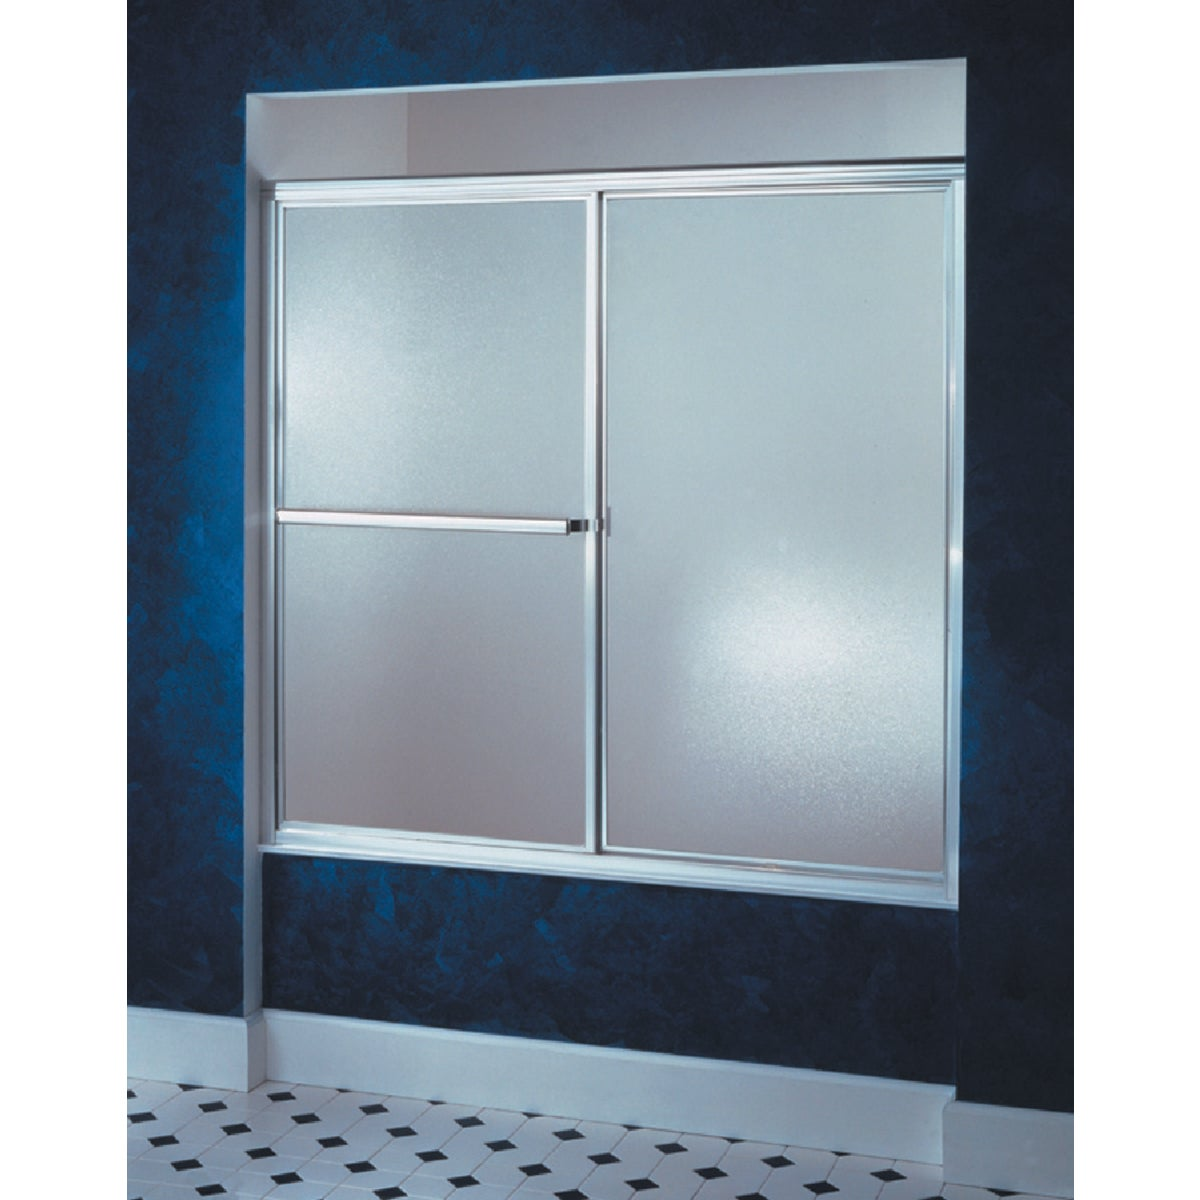 Sterling SILVER BY-PASS TUB DOOR 5906-59S